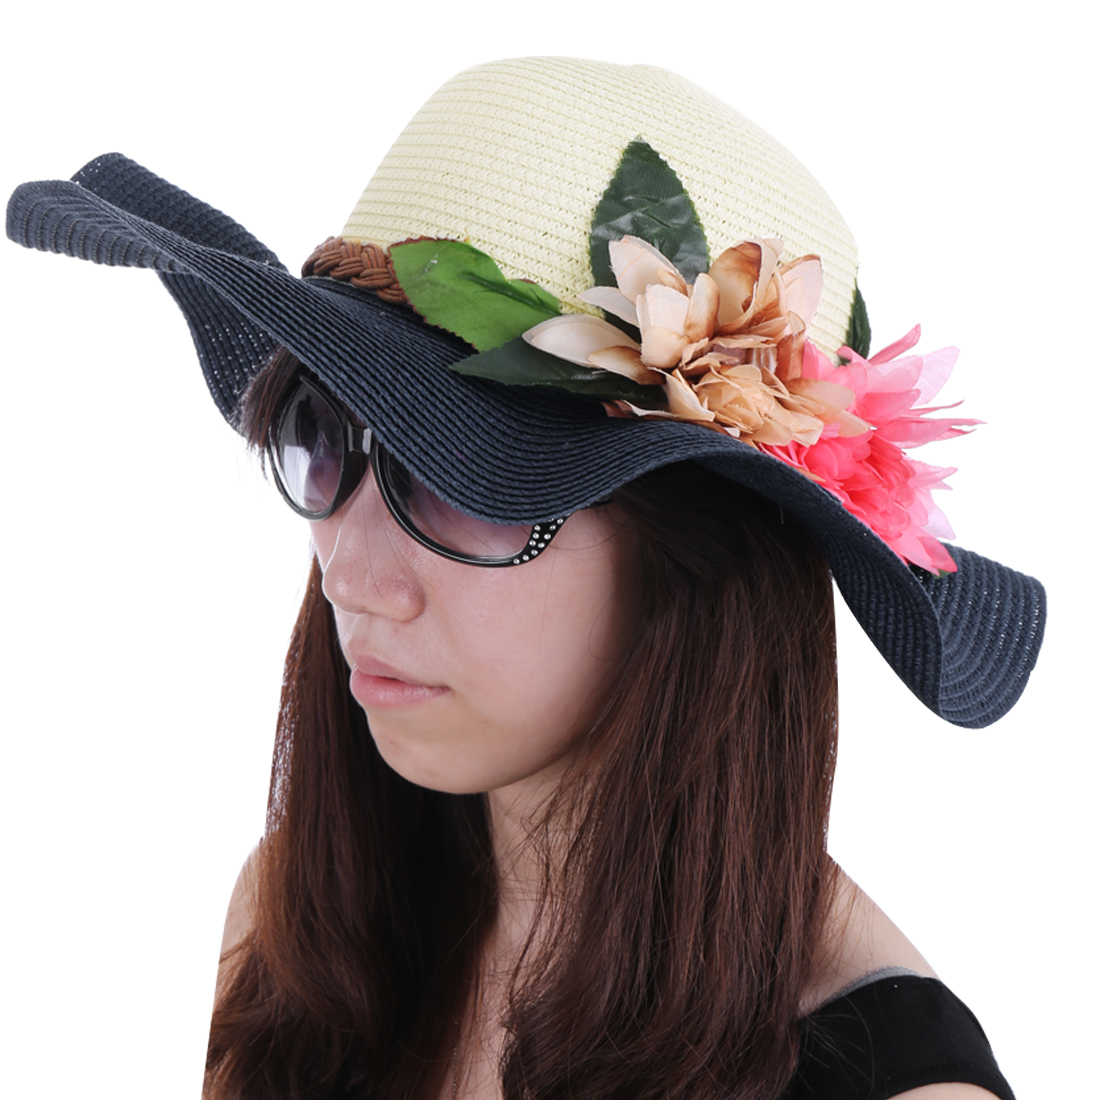 Women Color Blocking Braided Strap Hat Dark Blue White